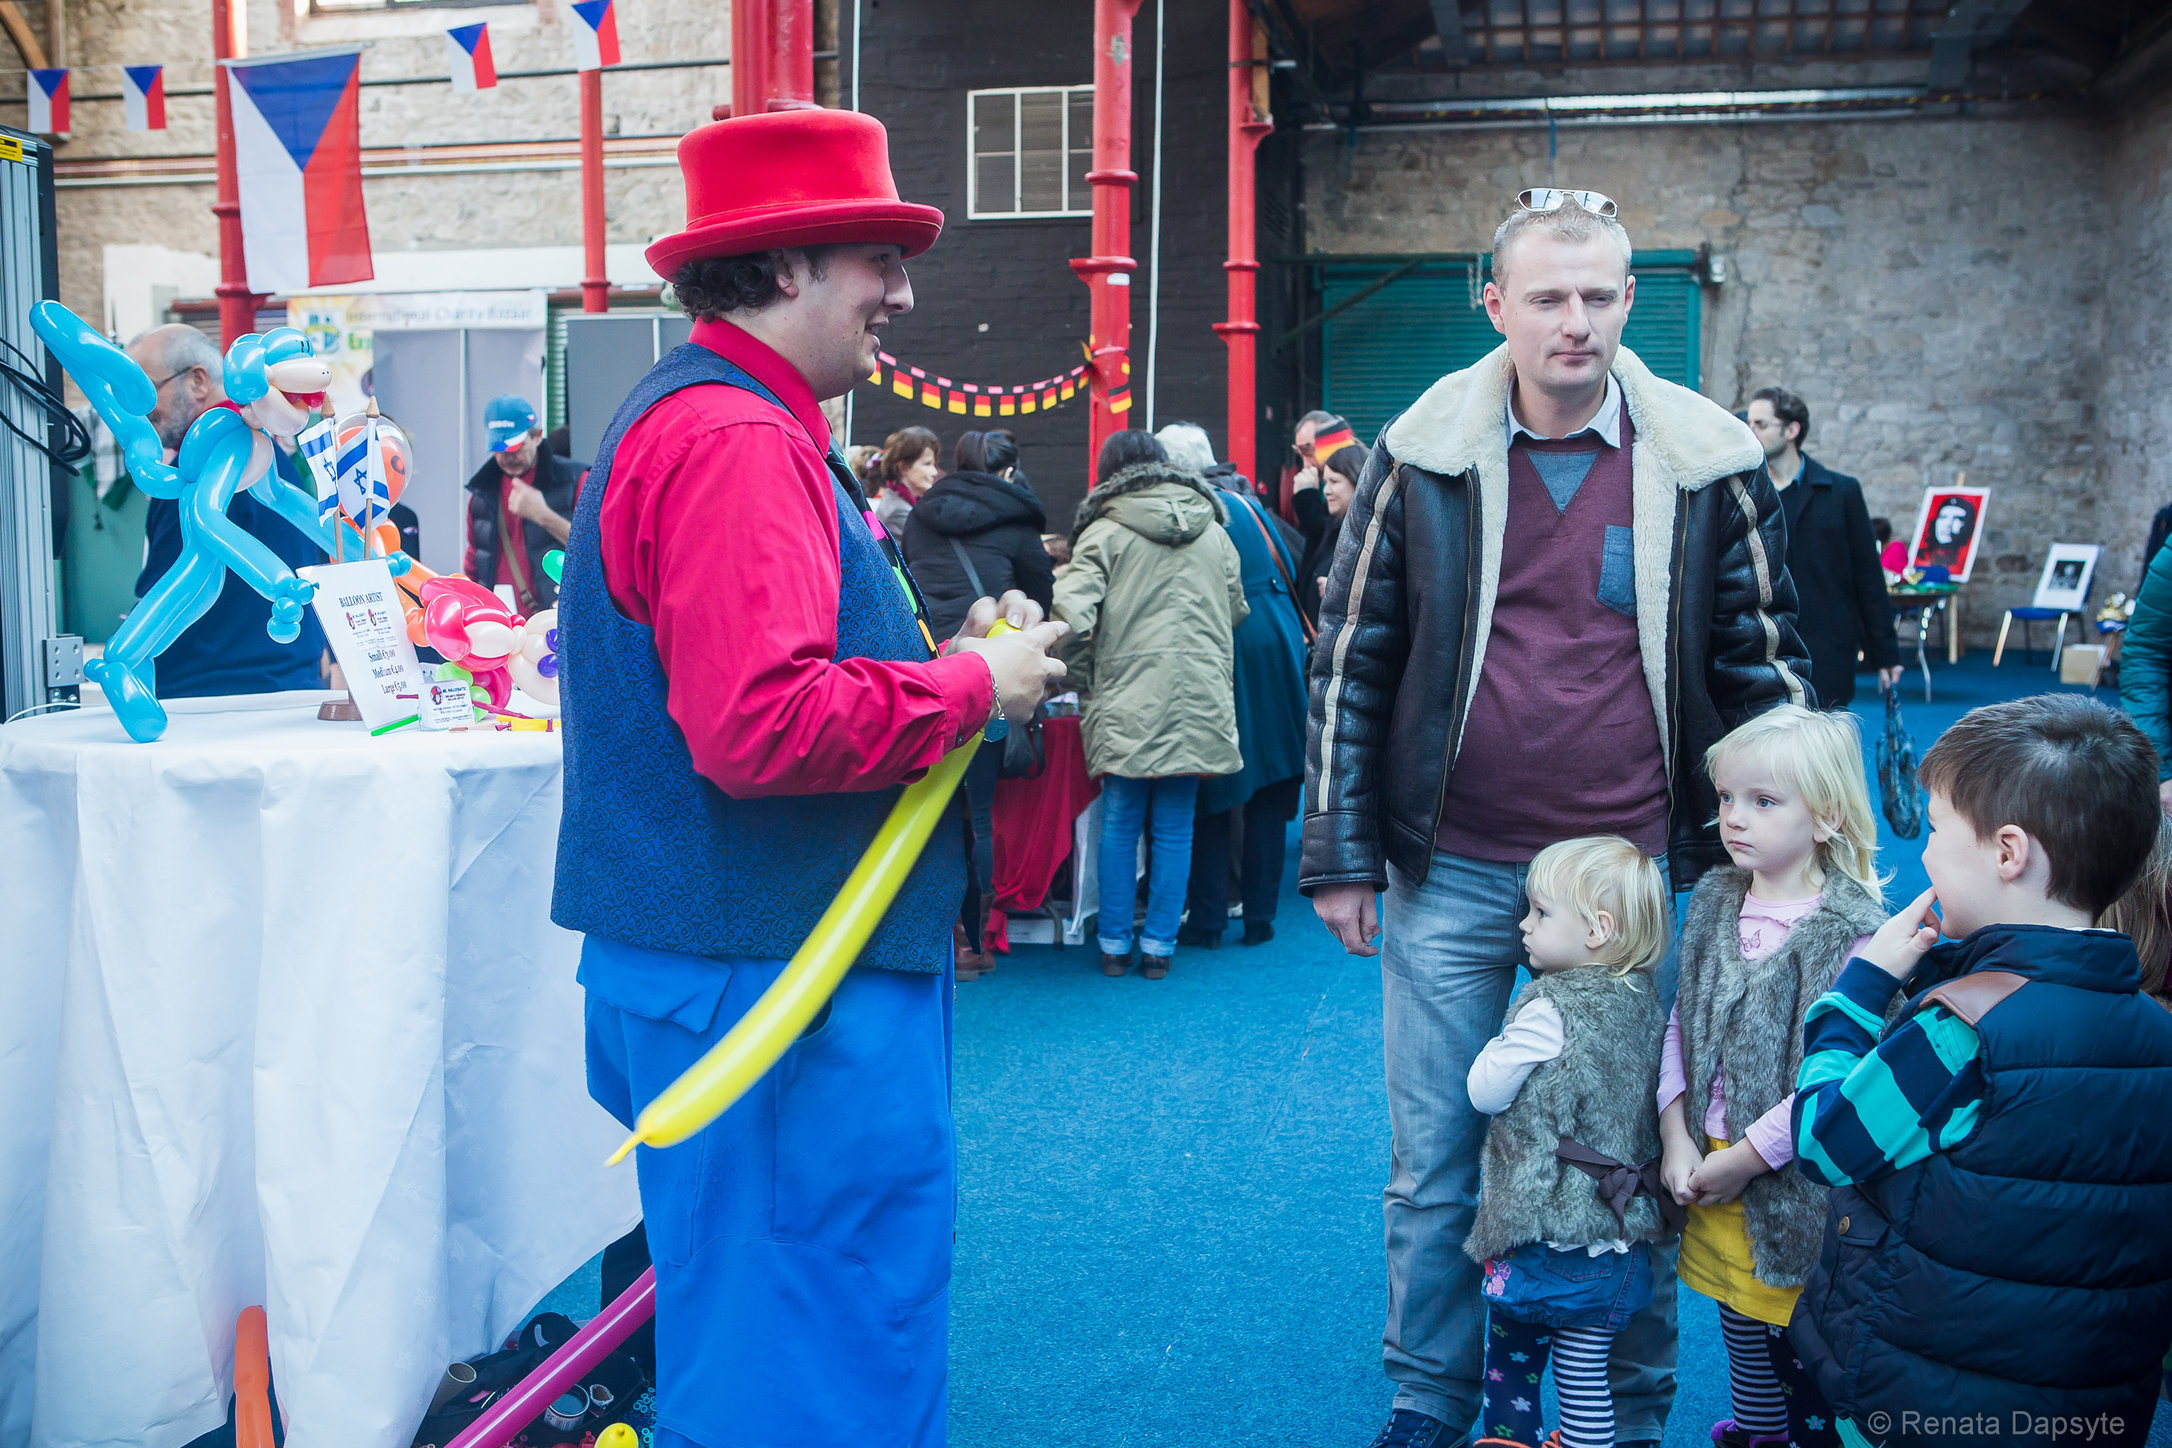 033_International Charity Bazaar Dublin 2013.JPG